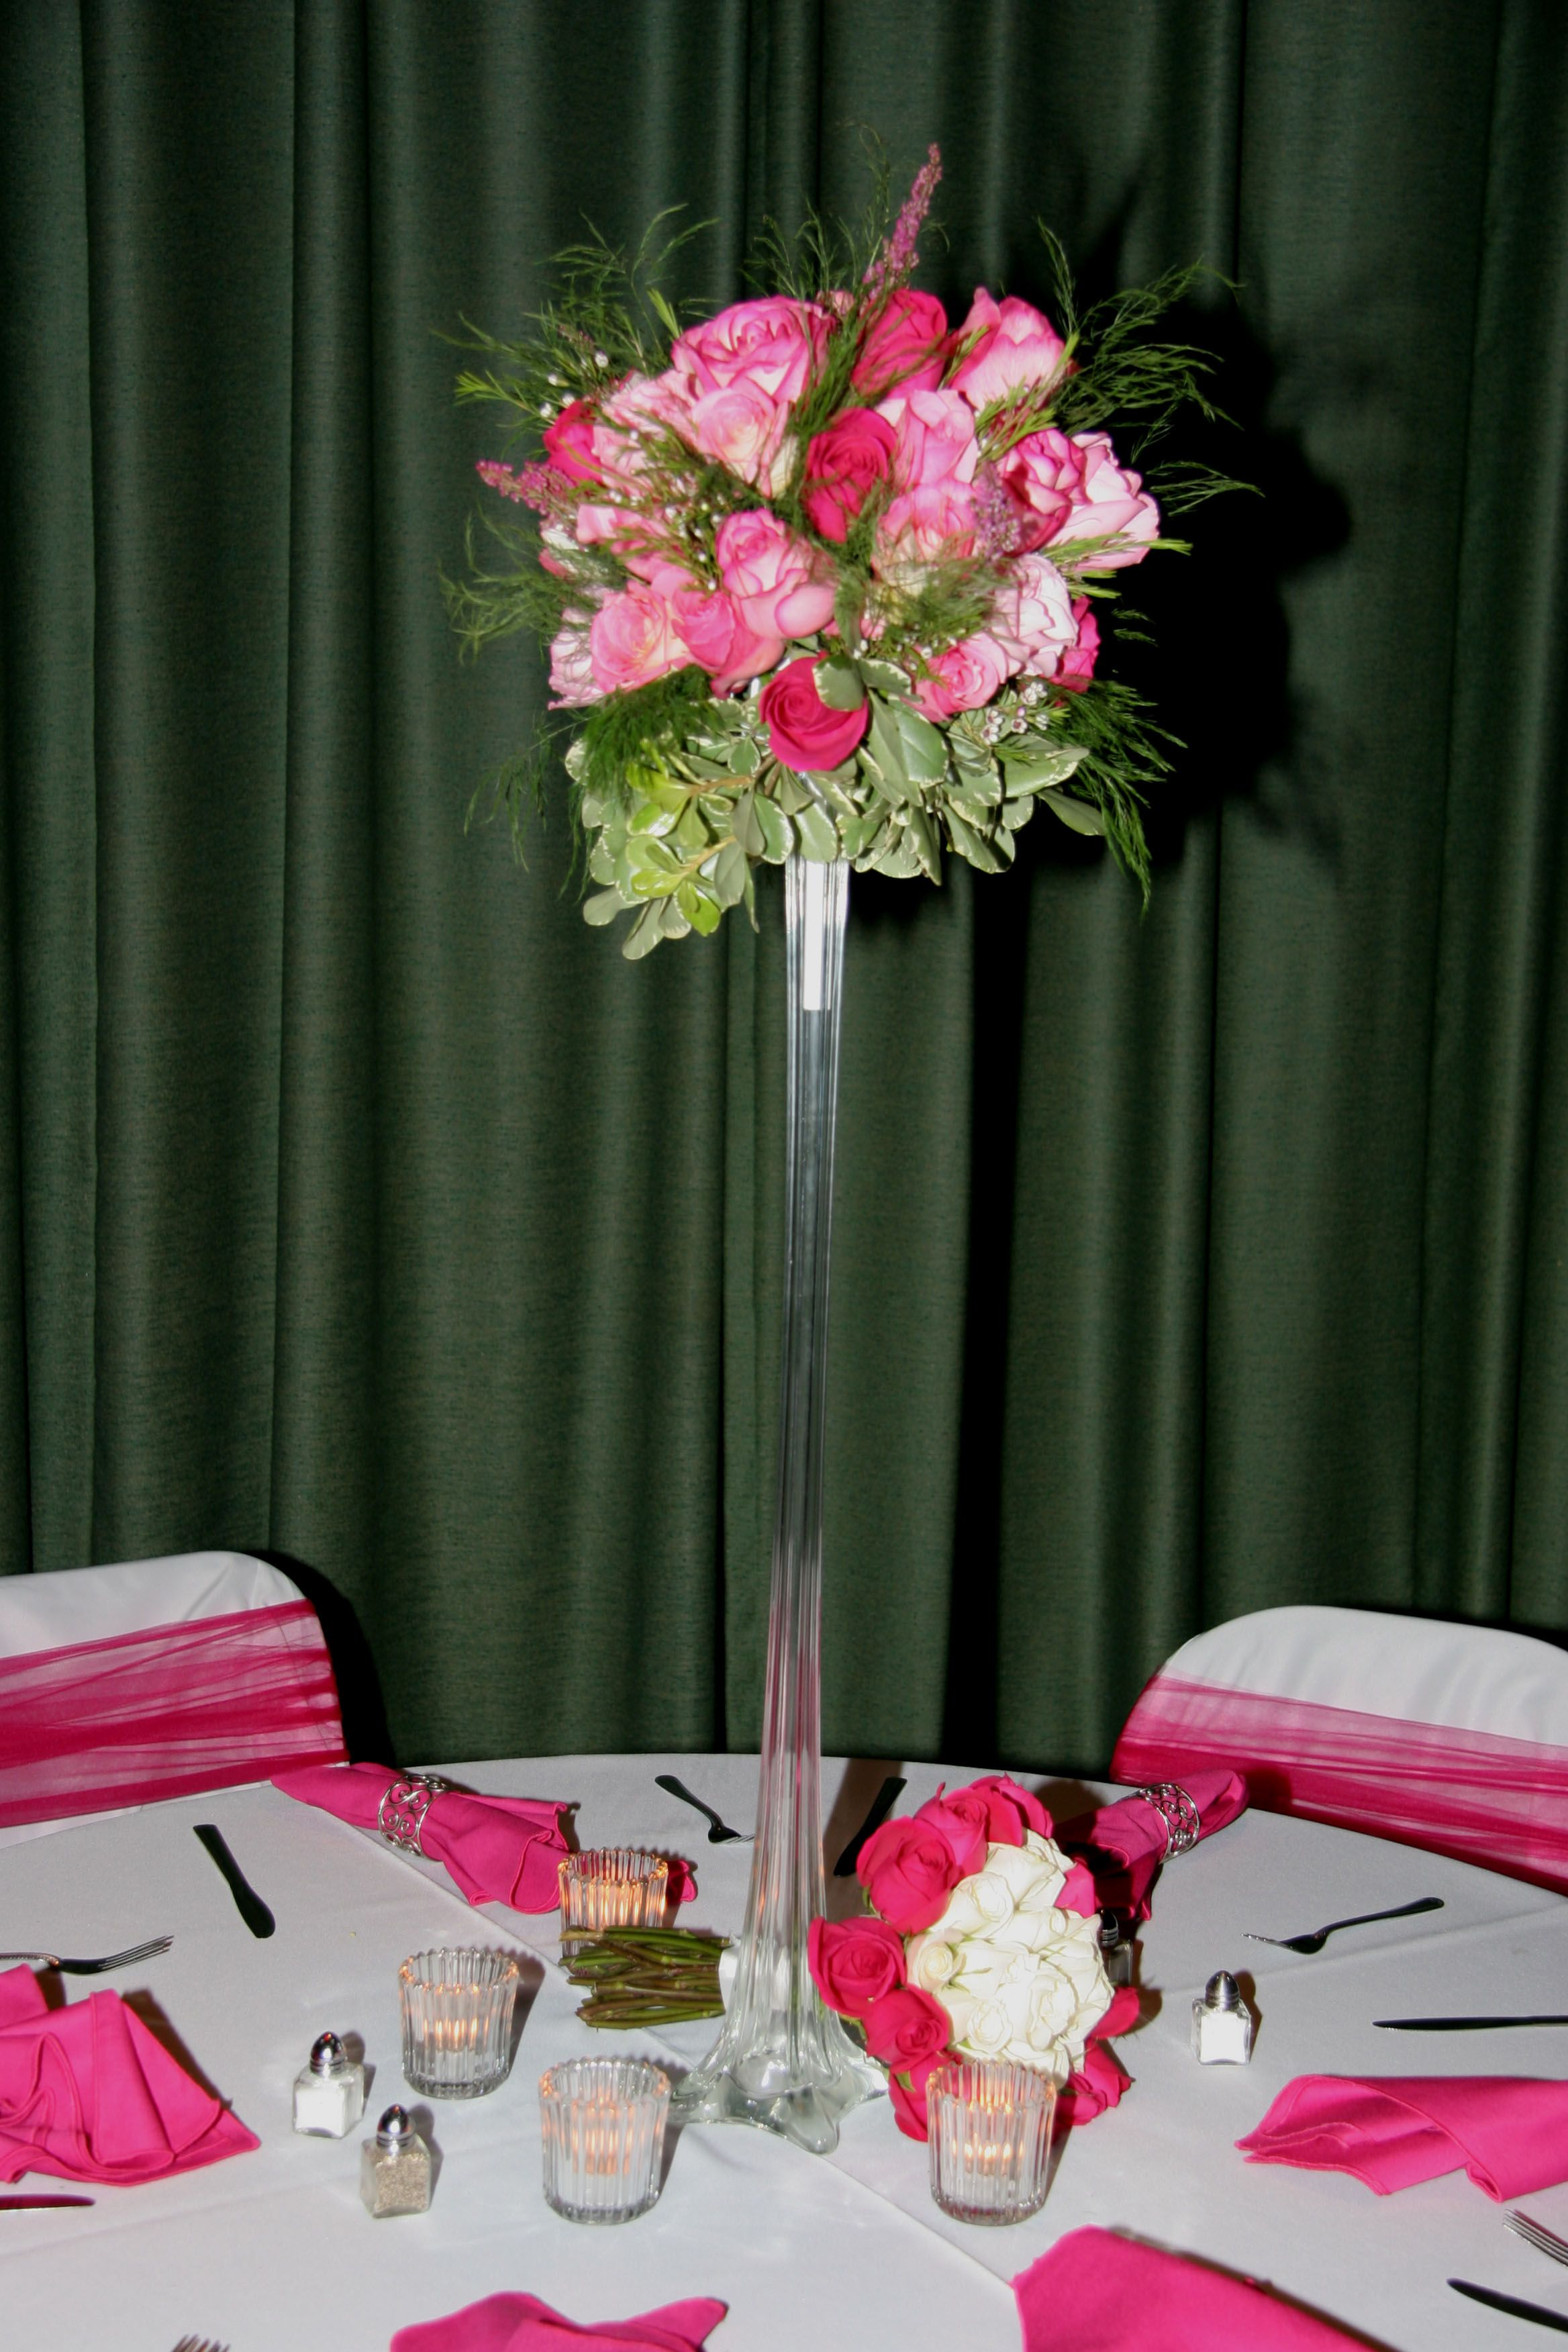 Tall Glass Vase Wedding Centerpiece with Pink Floral Arrangement and